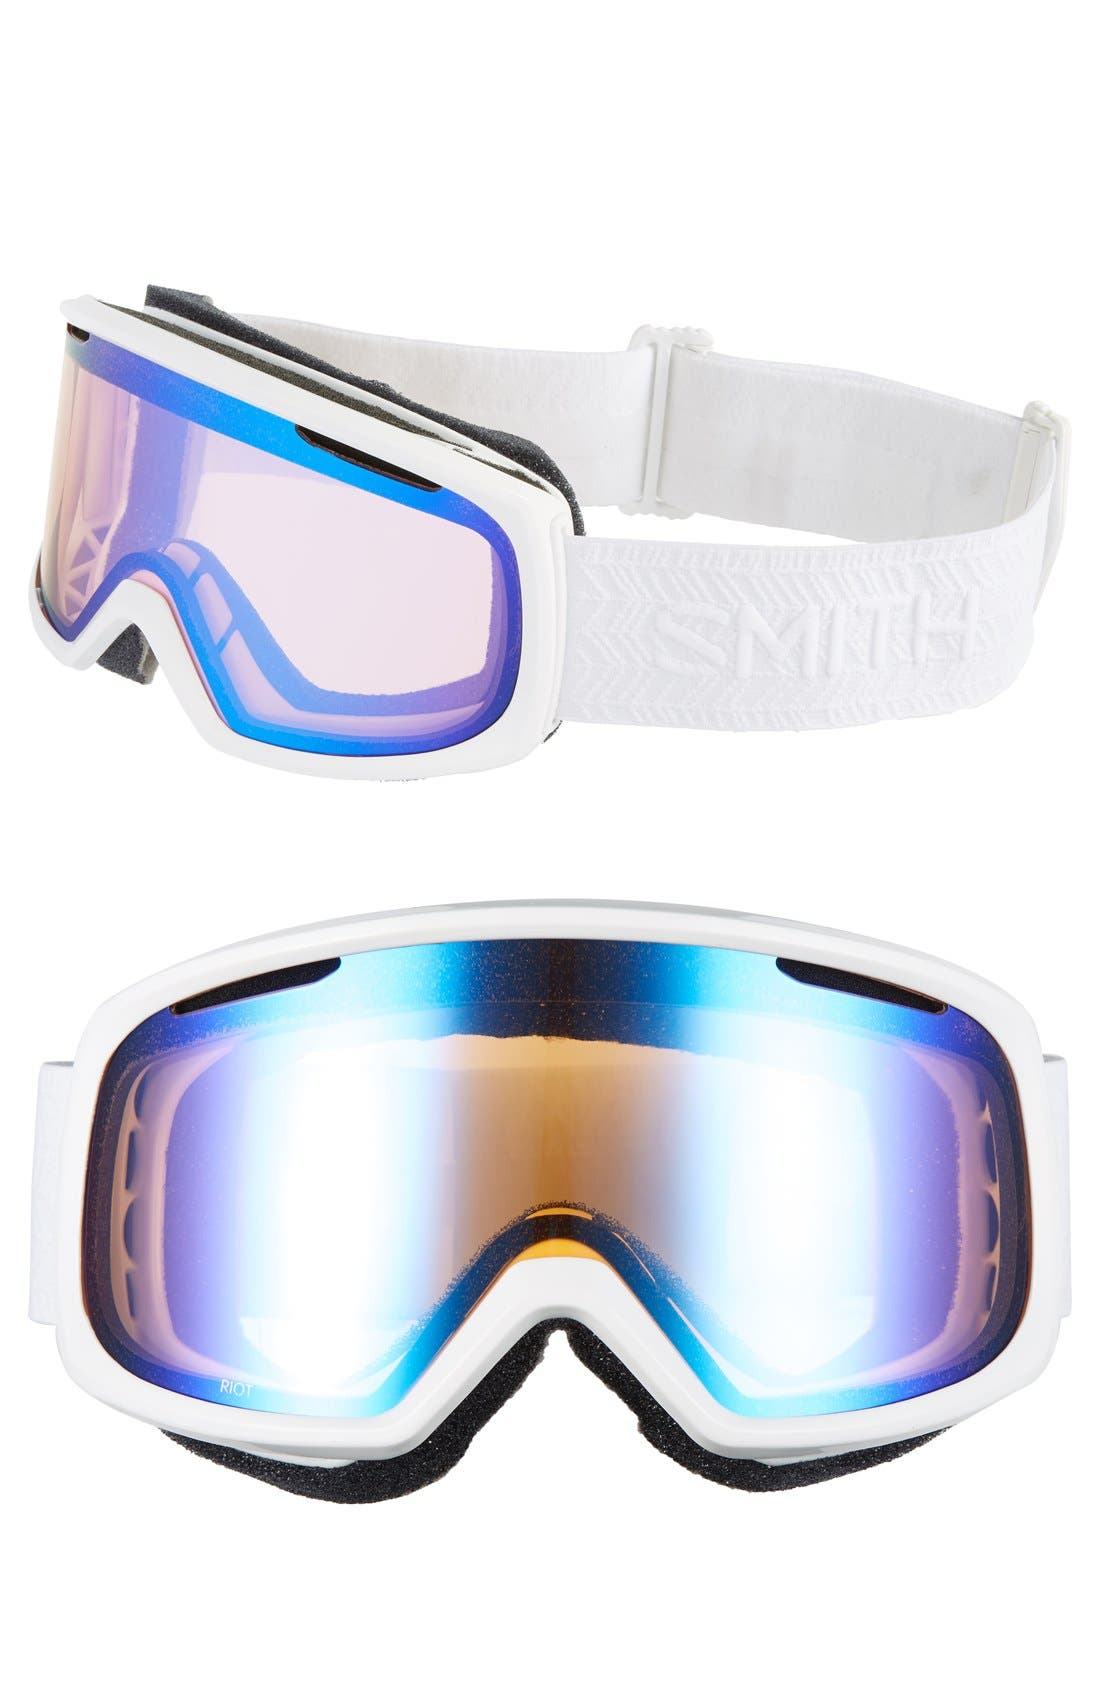 SMITH 'RIOT' SNOW GOGGLES - WHITE ECLIPSE/ BLUE MIRROR